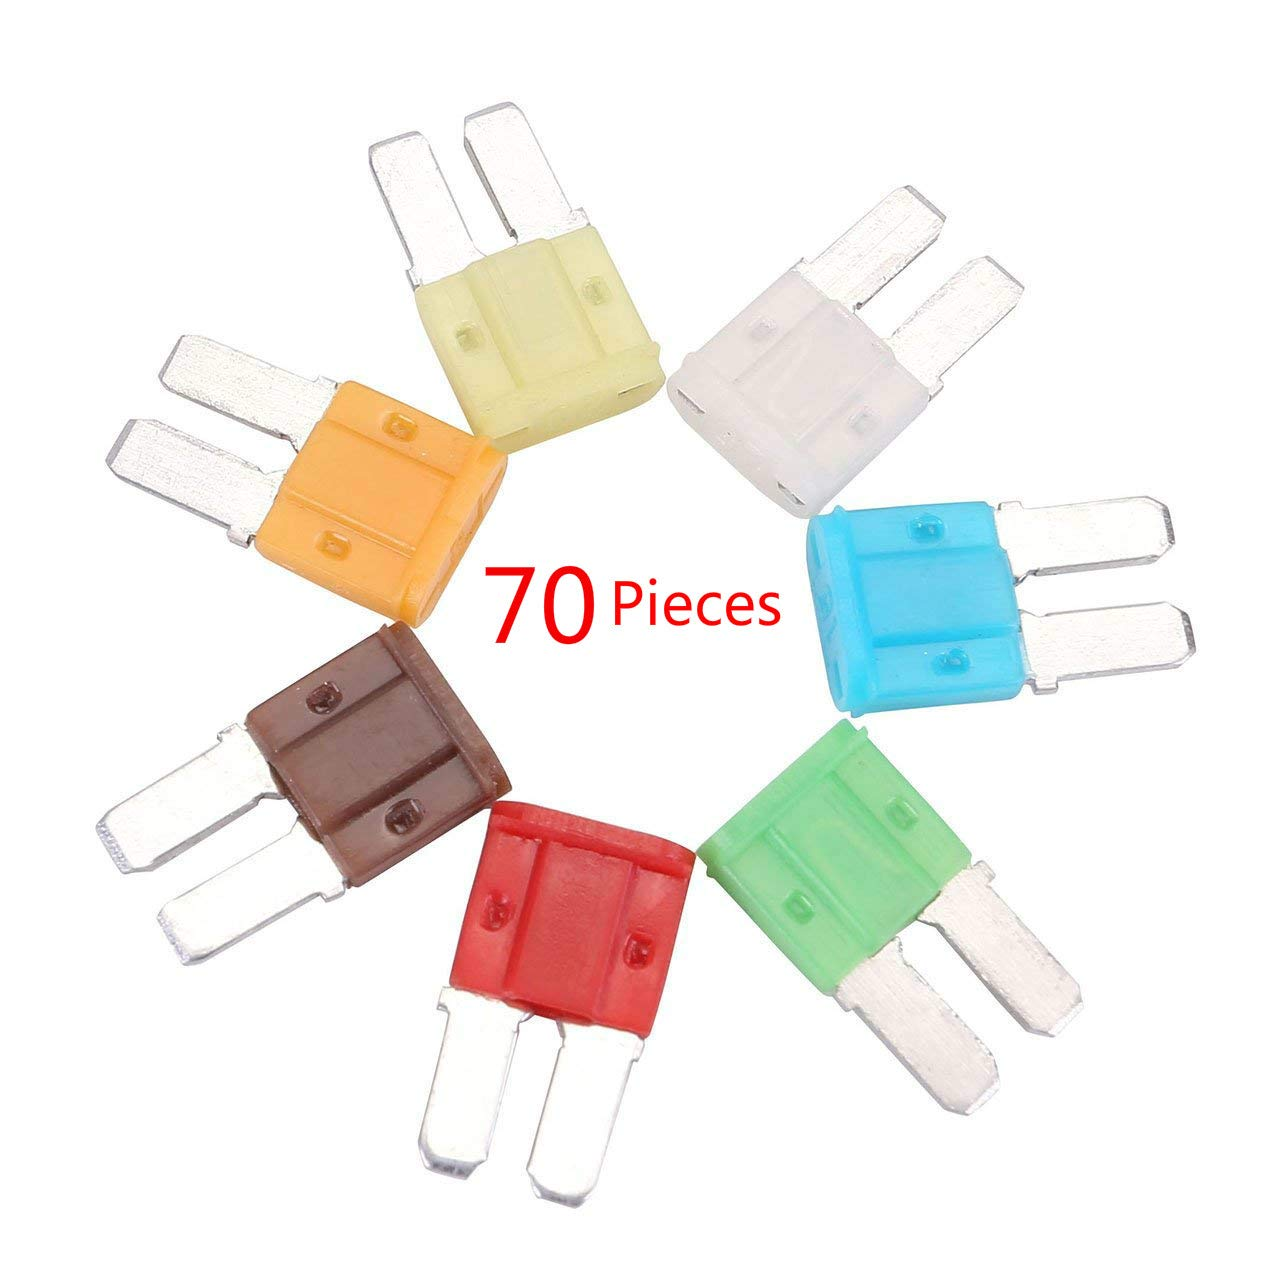 Auto Car Micro II 2 Blade Fuse 5A 7.5A 10A 15A 20A 25A 30A Assortment ATO ATC Kit for Automotive, Boat, Marine, RV, SUV, Trike (70 Pieces) WEICHUANG